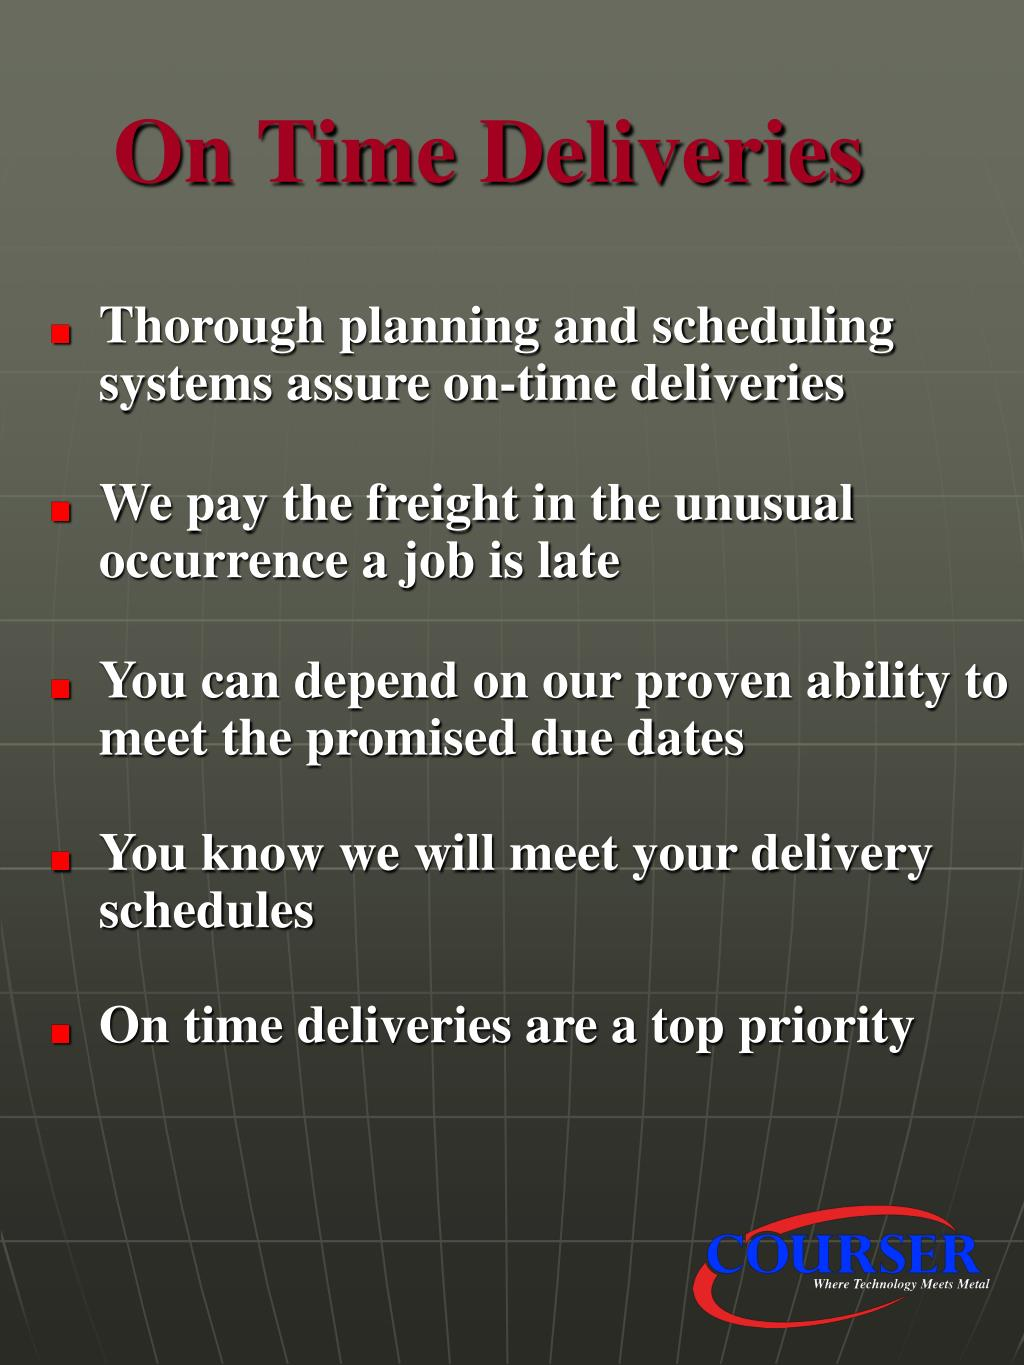 Thorough planning and scheduling systems assure on-time deliveries